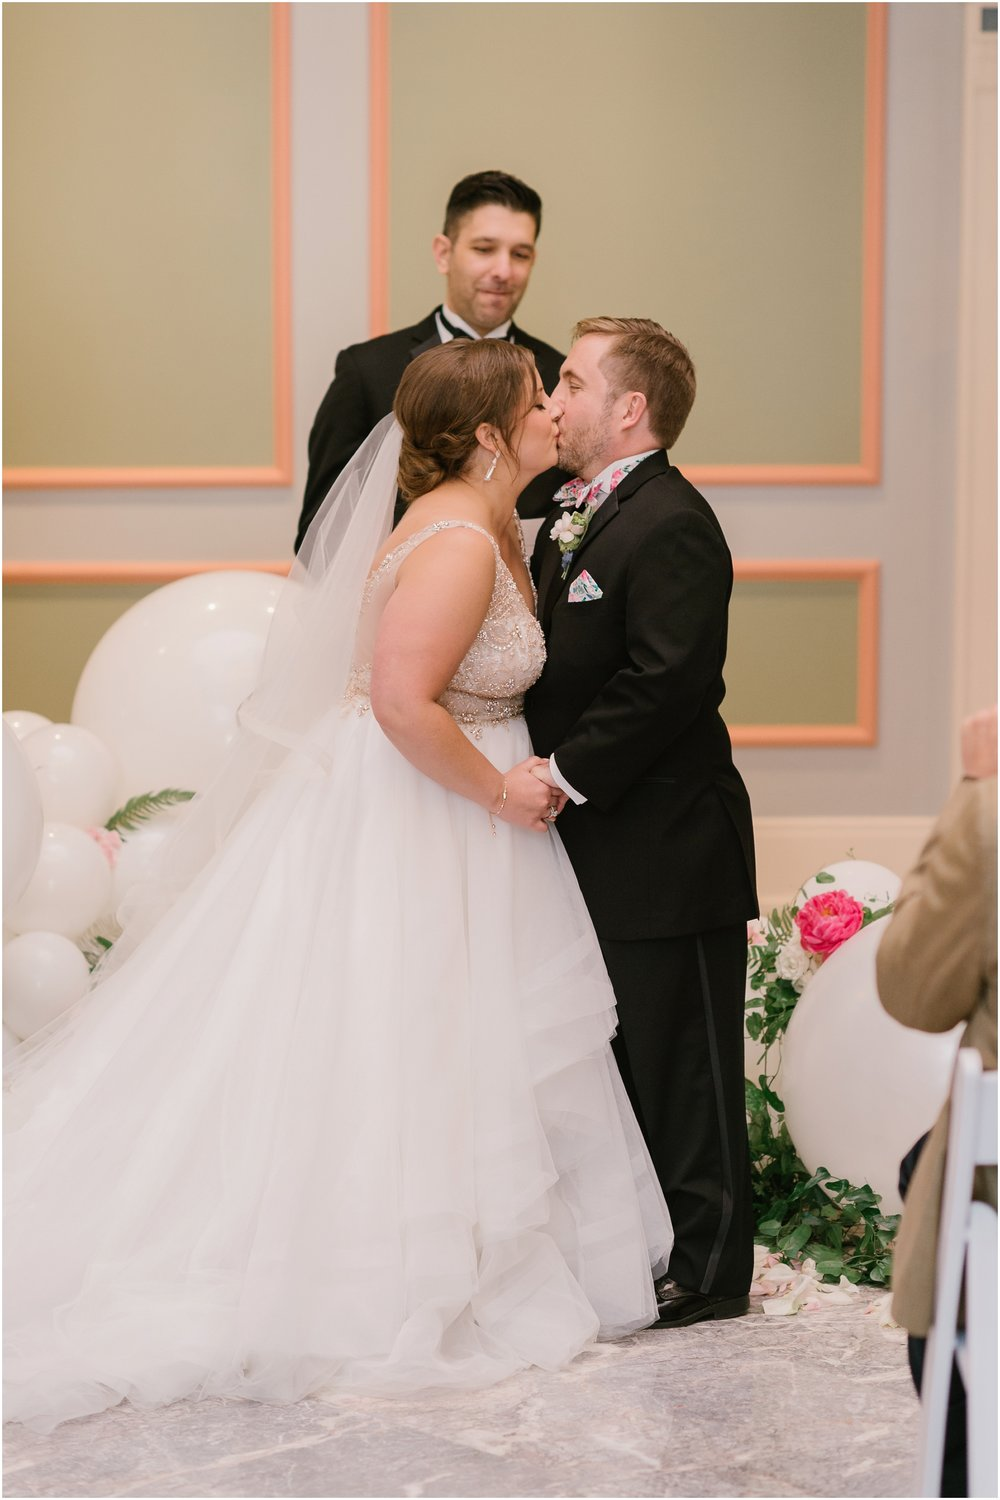 Rebecca_Shehorn_Photography_Indianapolis_Wedding_Photographer_8835.jpg